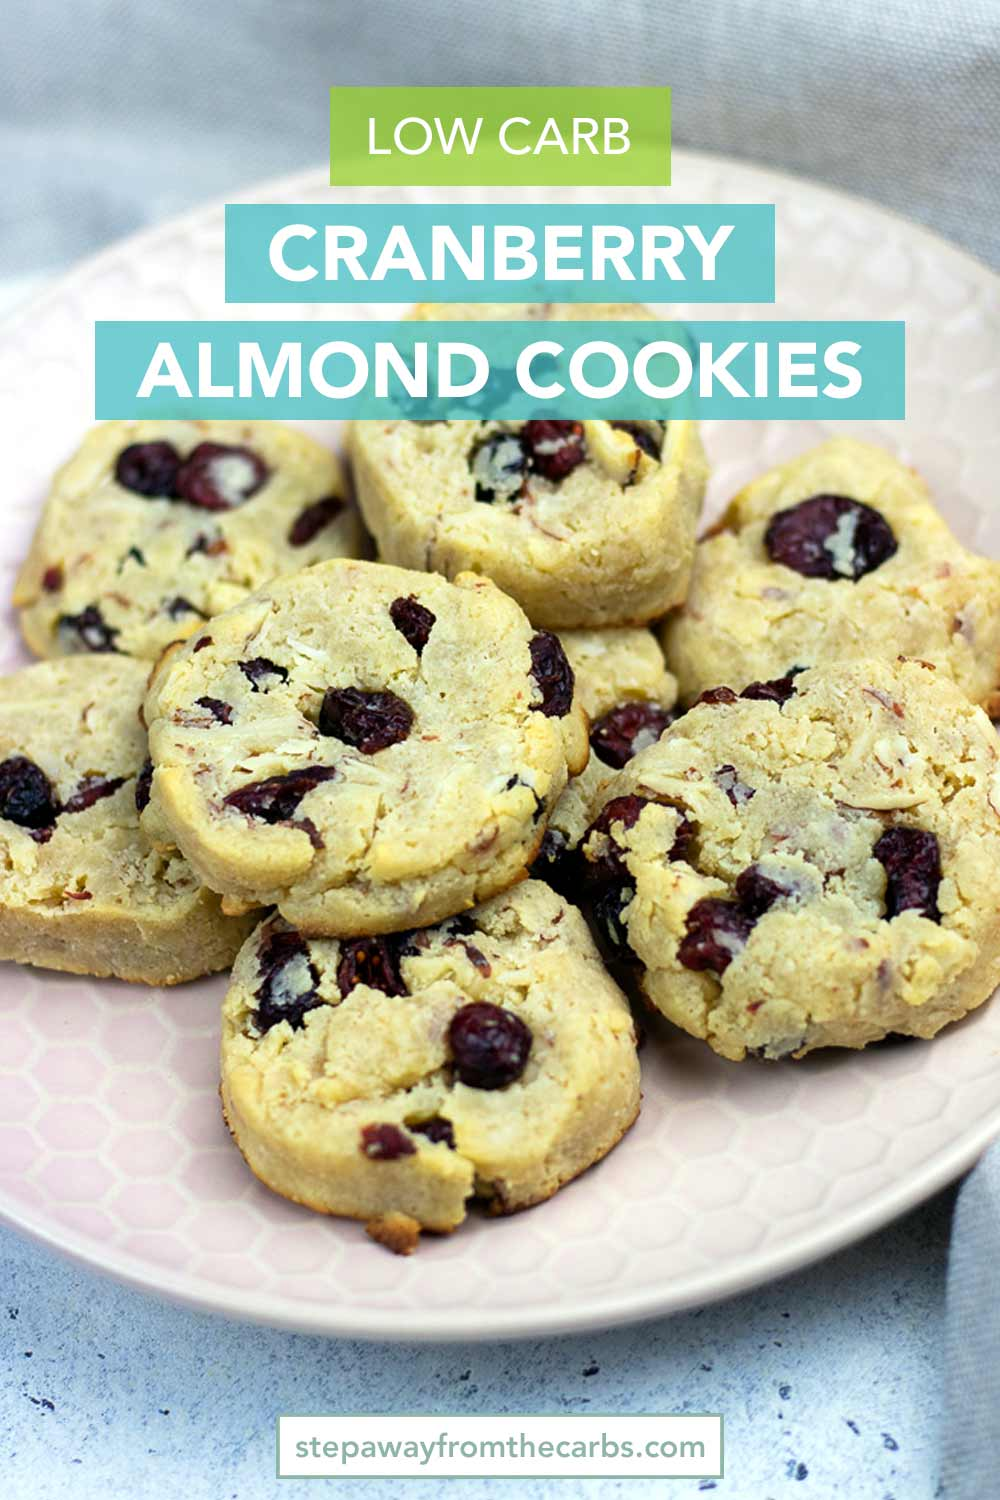 Low Carb Cranberry Almond Cookies - perfect for the festive season! Gluten free, keto, sugar free and dairy free recipe with video tutorial!